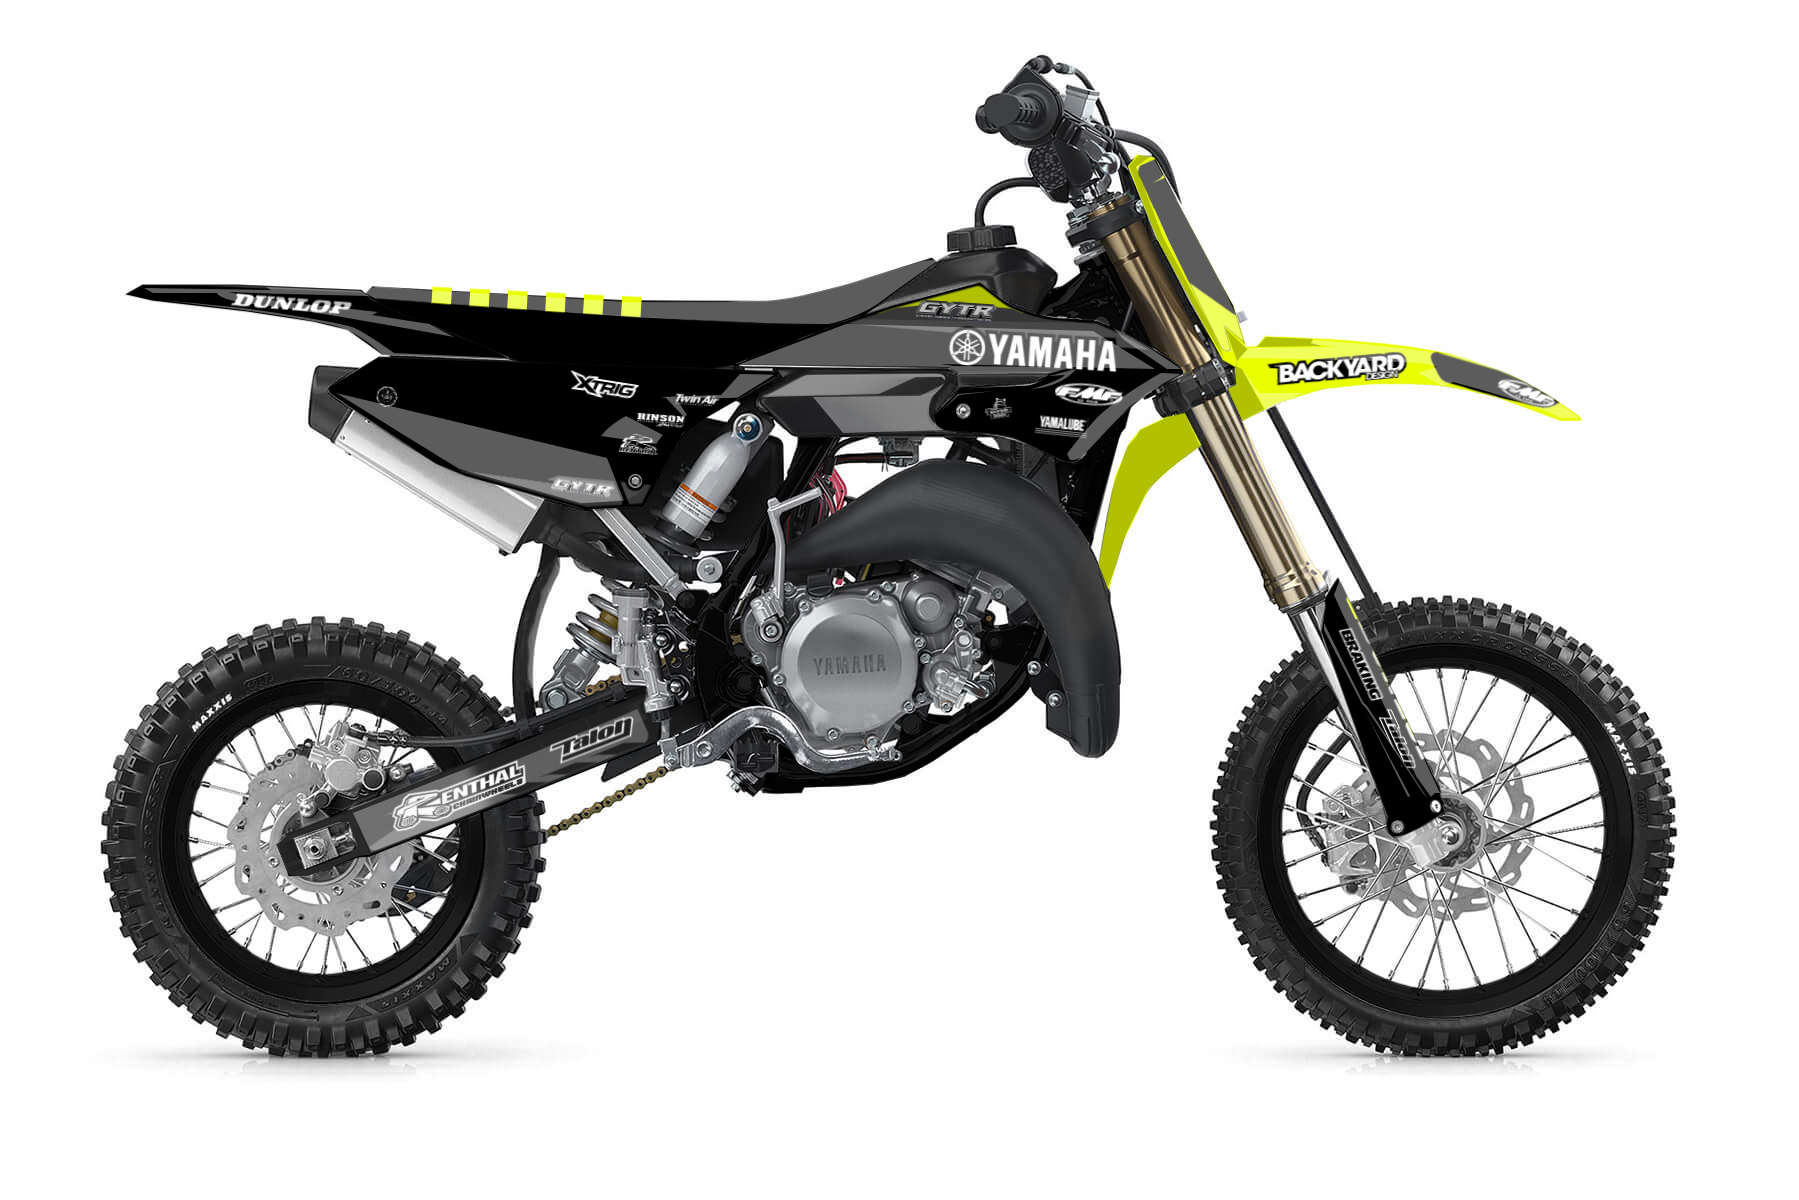 Yamaha YZ 65 MX Graphic Kits  The YZ 65 is perfect for the next generation of racing. A powerful build and enough hp to gain your first experiences, this bike will open you the doors into the world of off road racing.